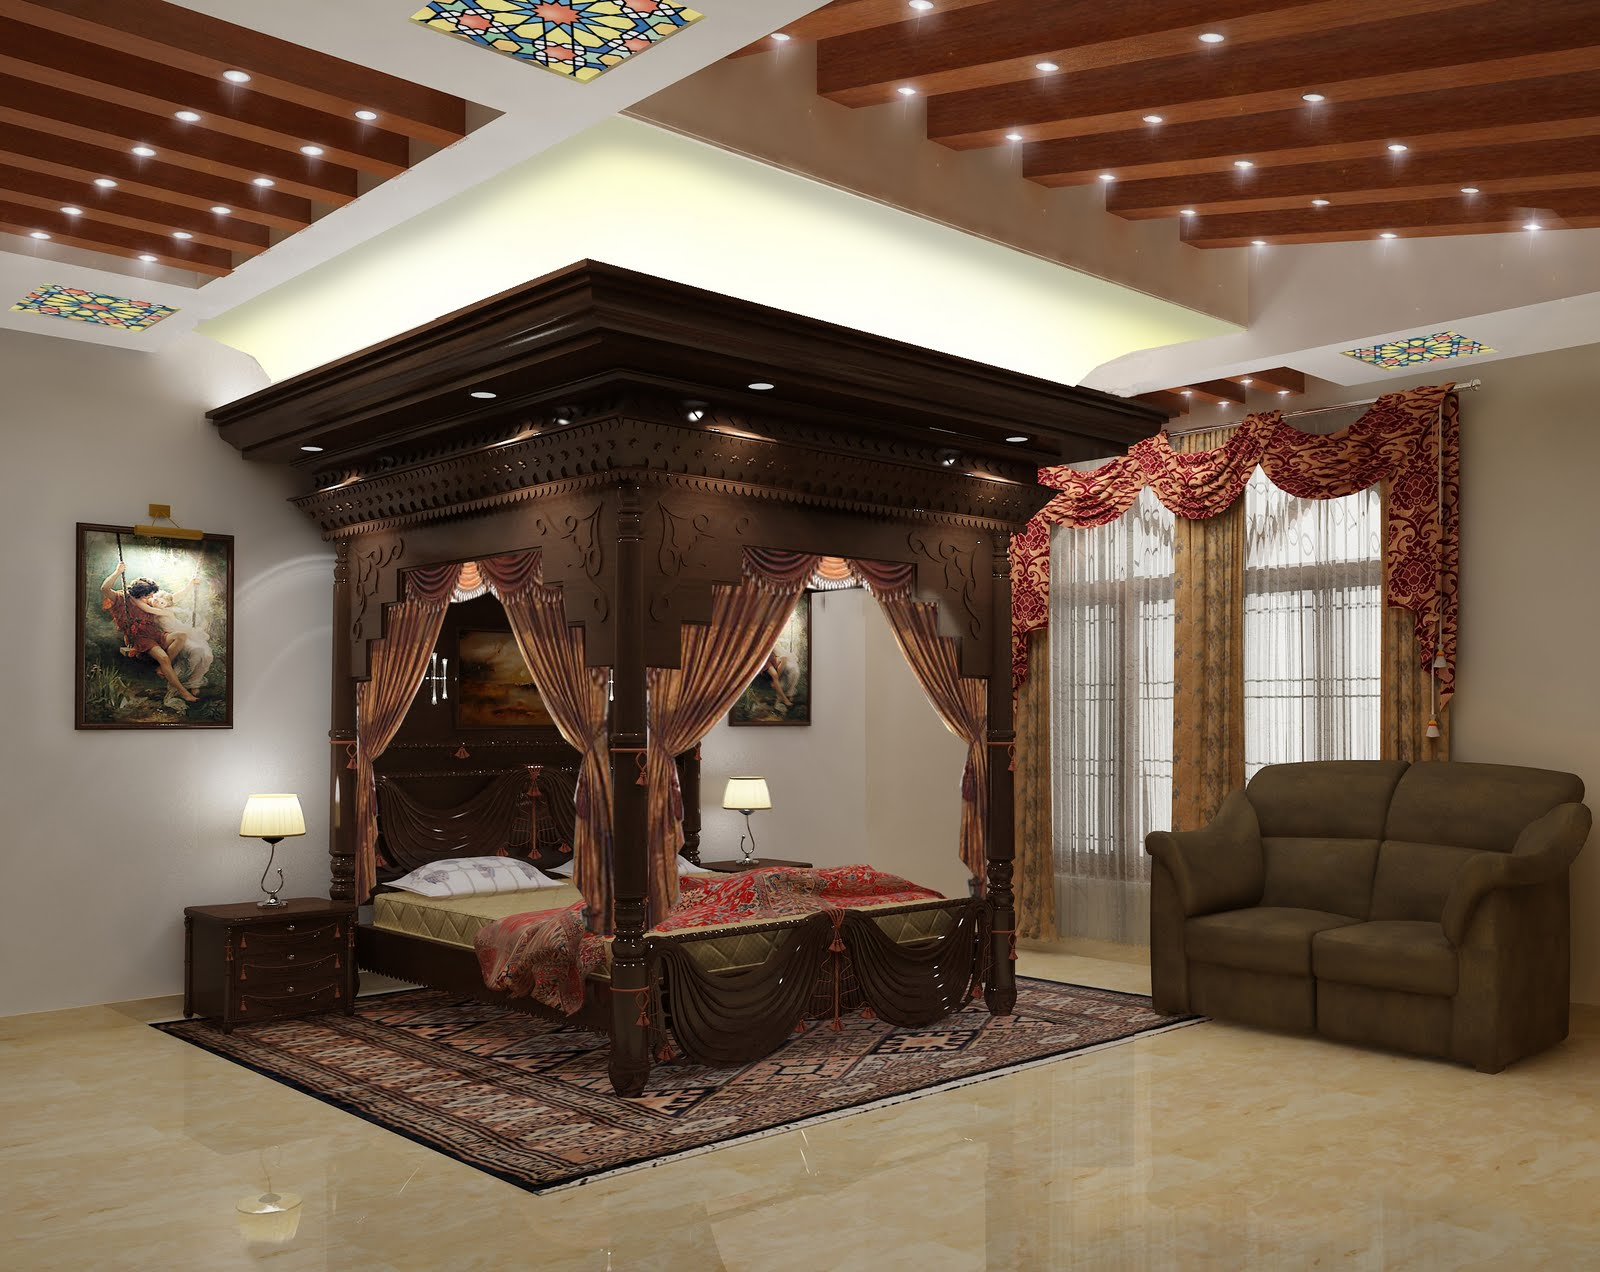 Interior design india for Interior designs in india